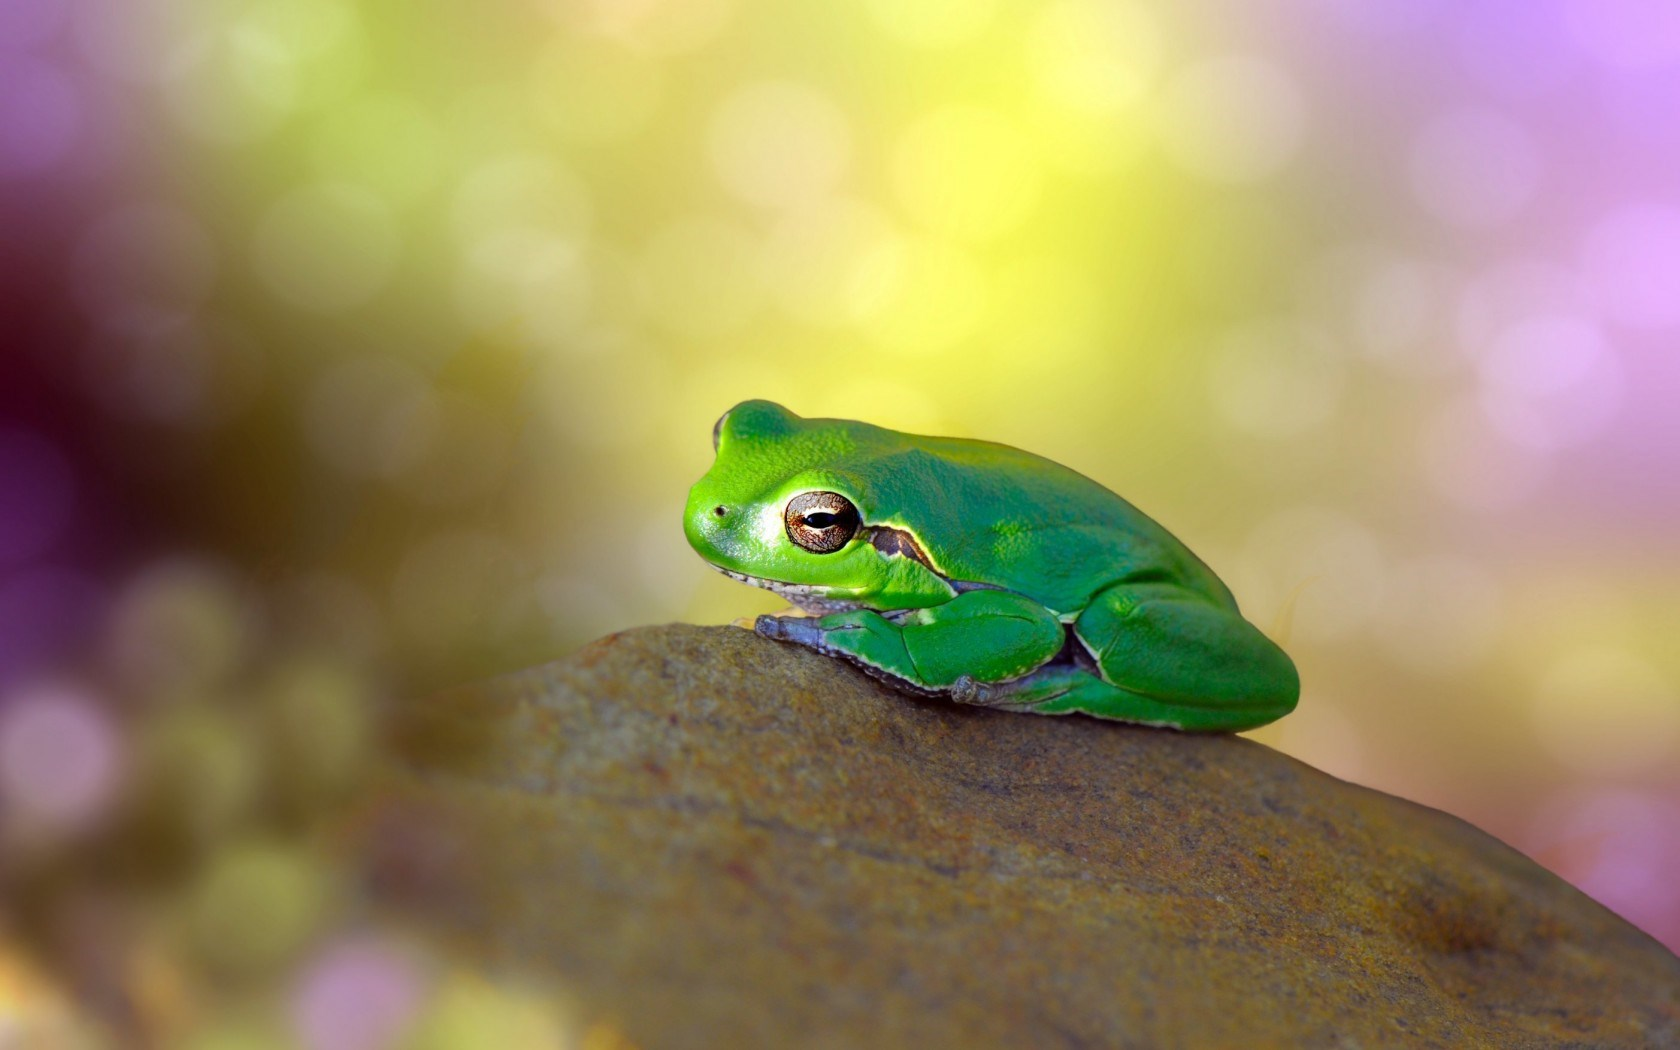 Frog Green on Stone Bokeh Colorful Background HD Wallpaper